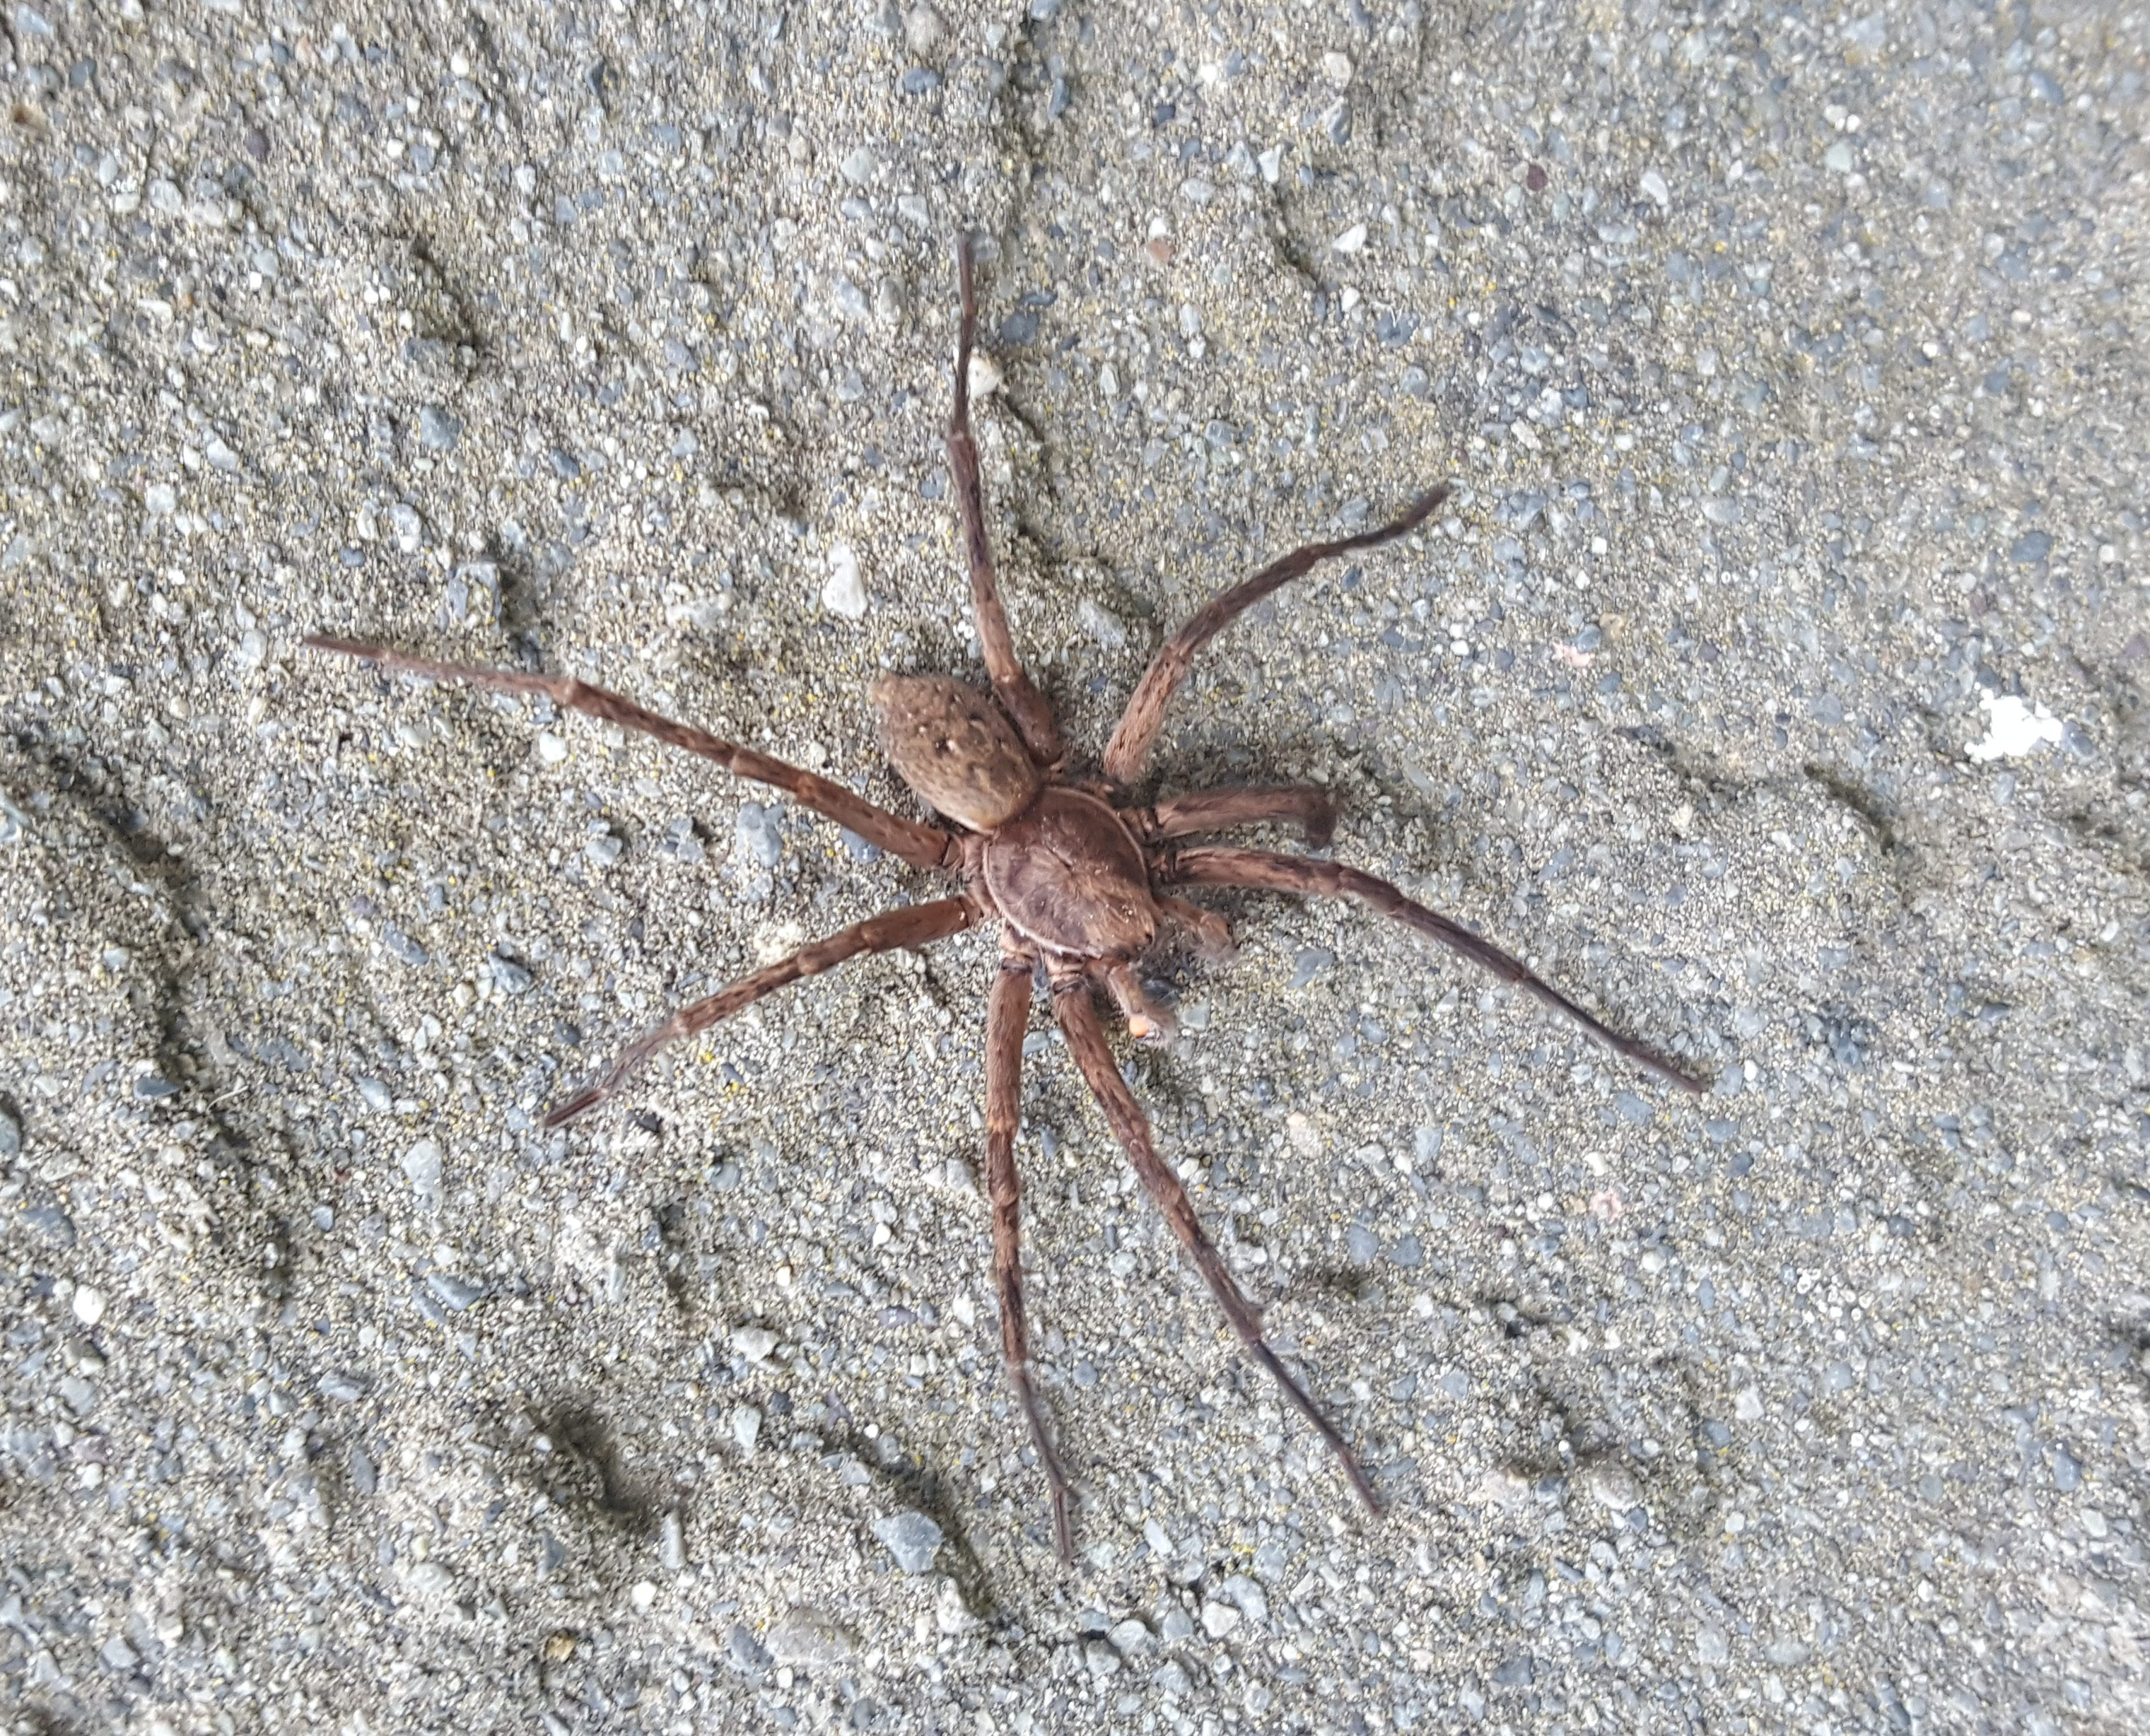 Picture of Uliodon (Vagrant Spiders) - Dorsal